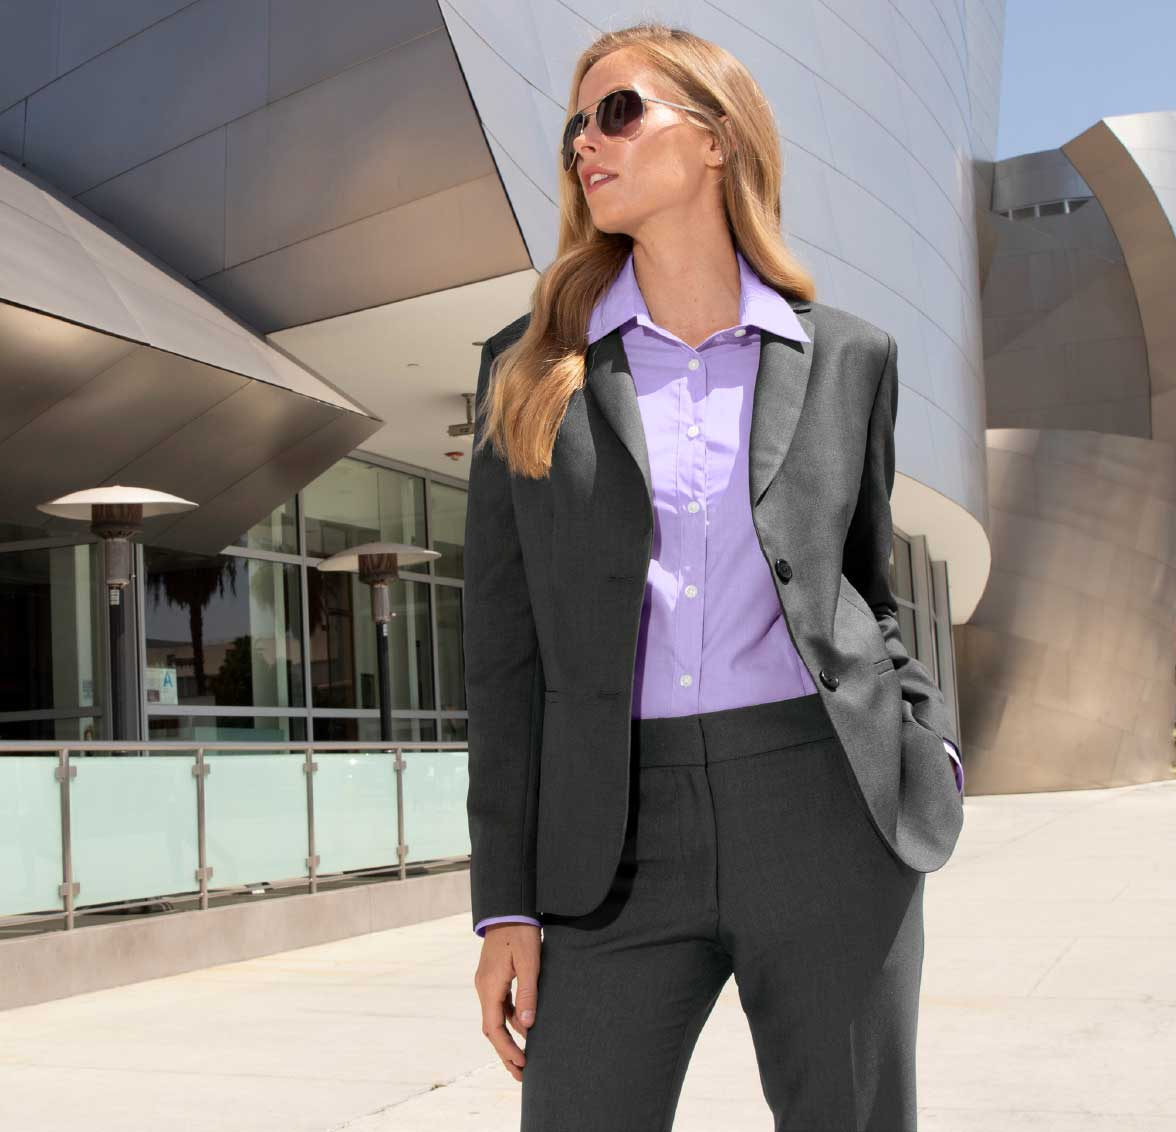 image of standing female business executive